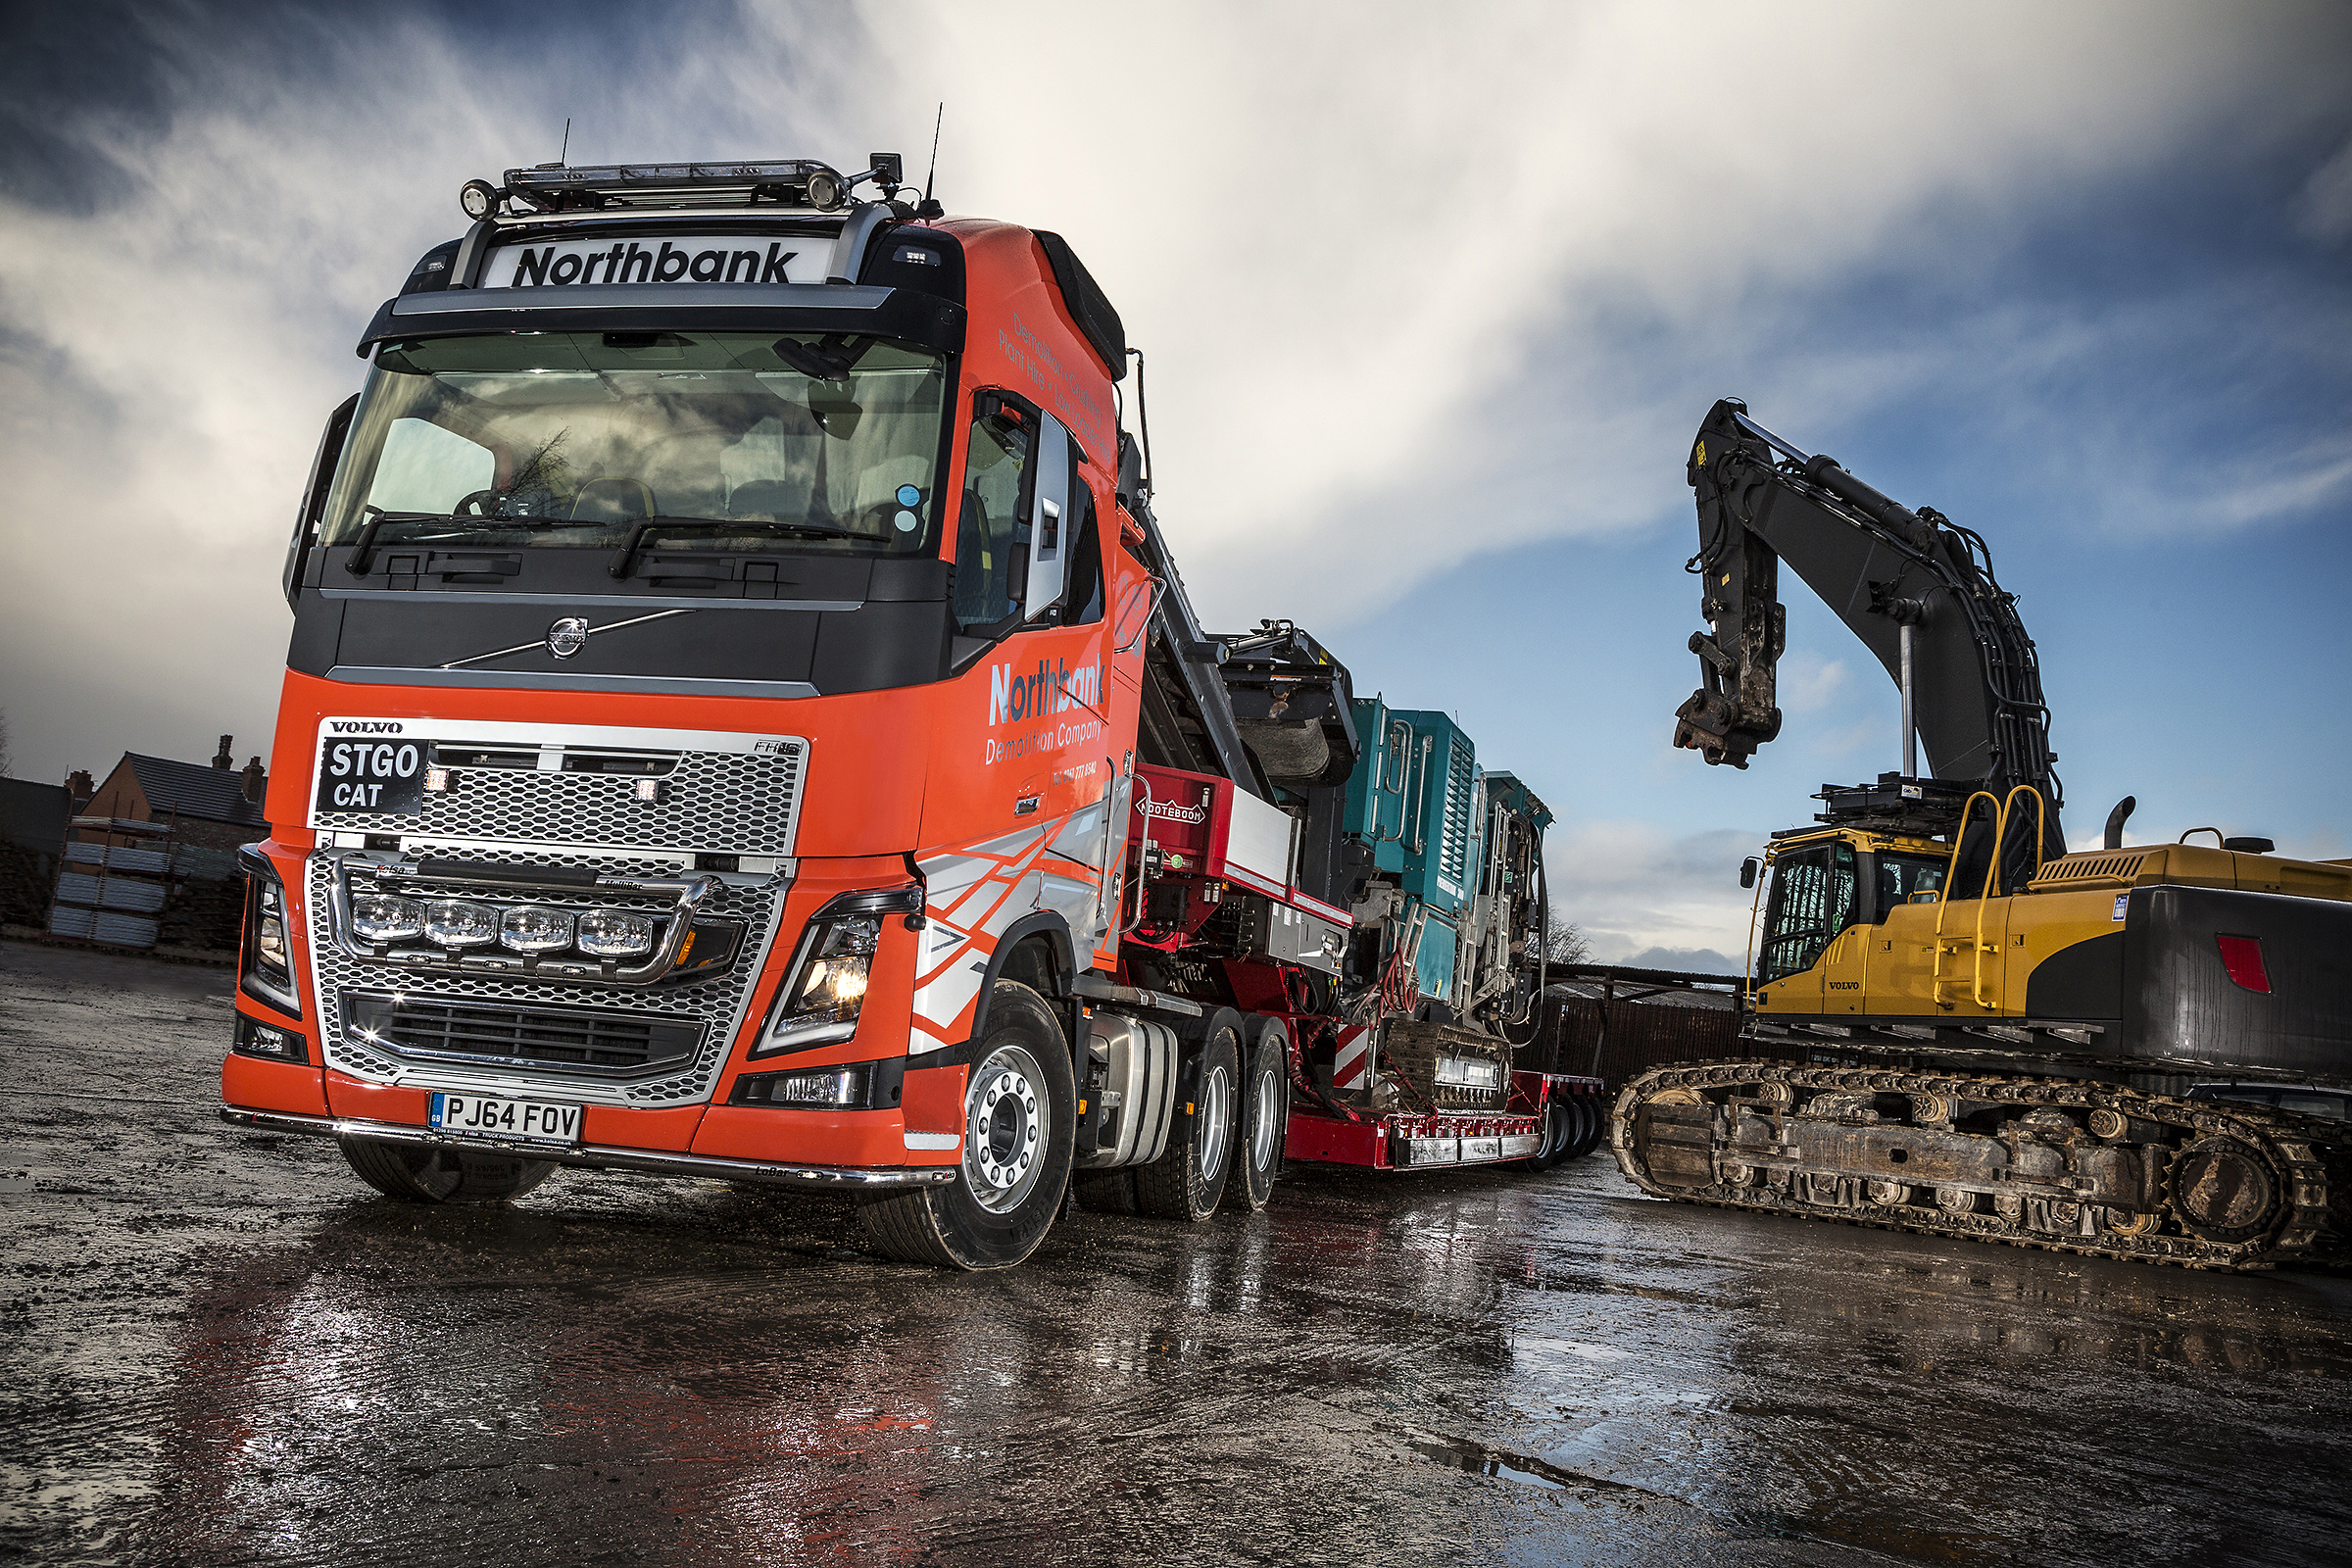 Fh16 Is First Heavy Haulage Volvo For Northbank Demolition